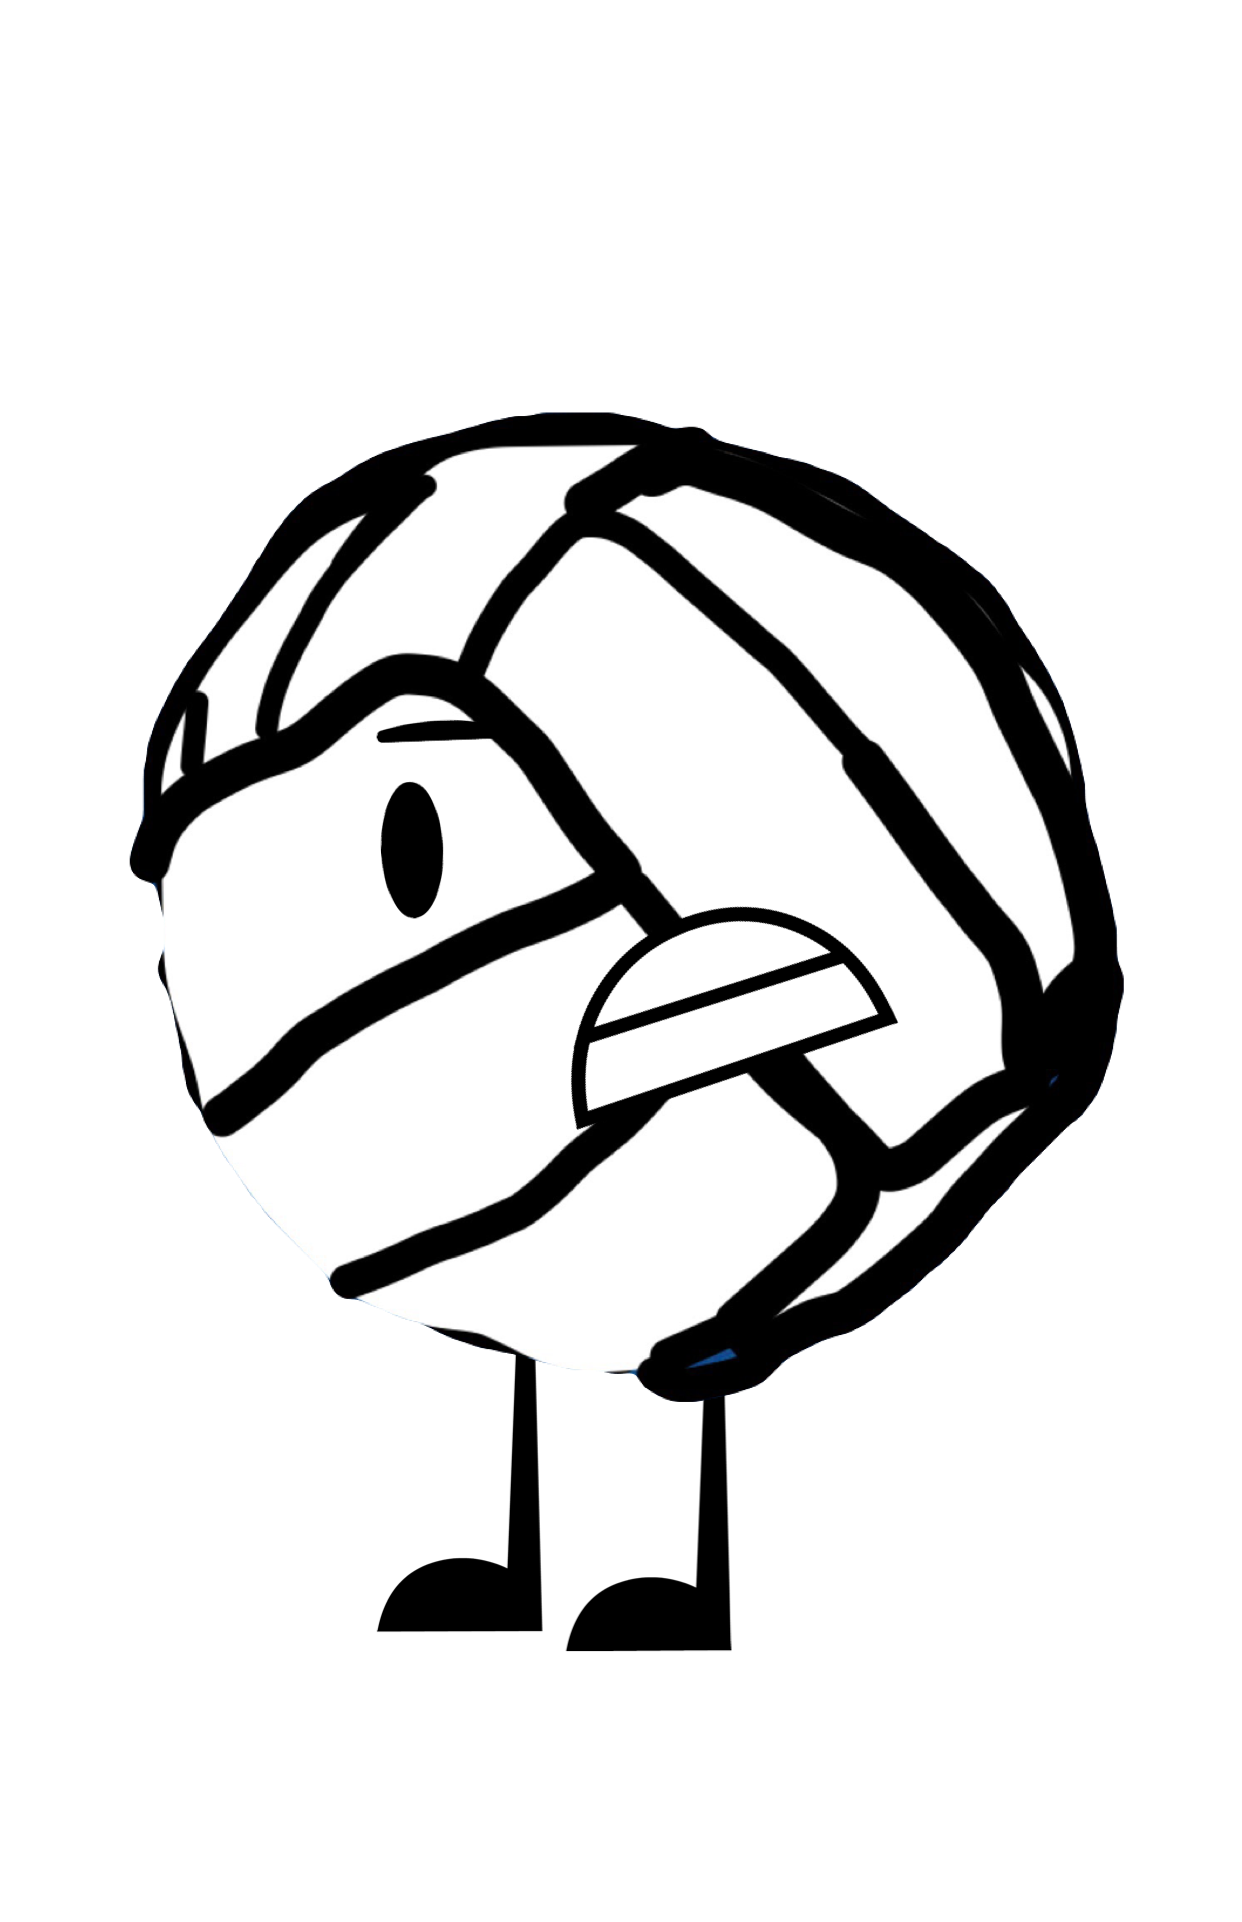 Clipart volleyball angry. Recommended character by me